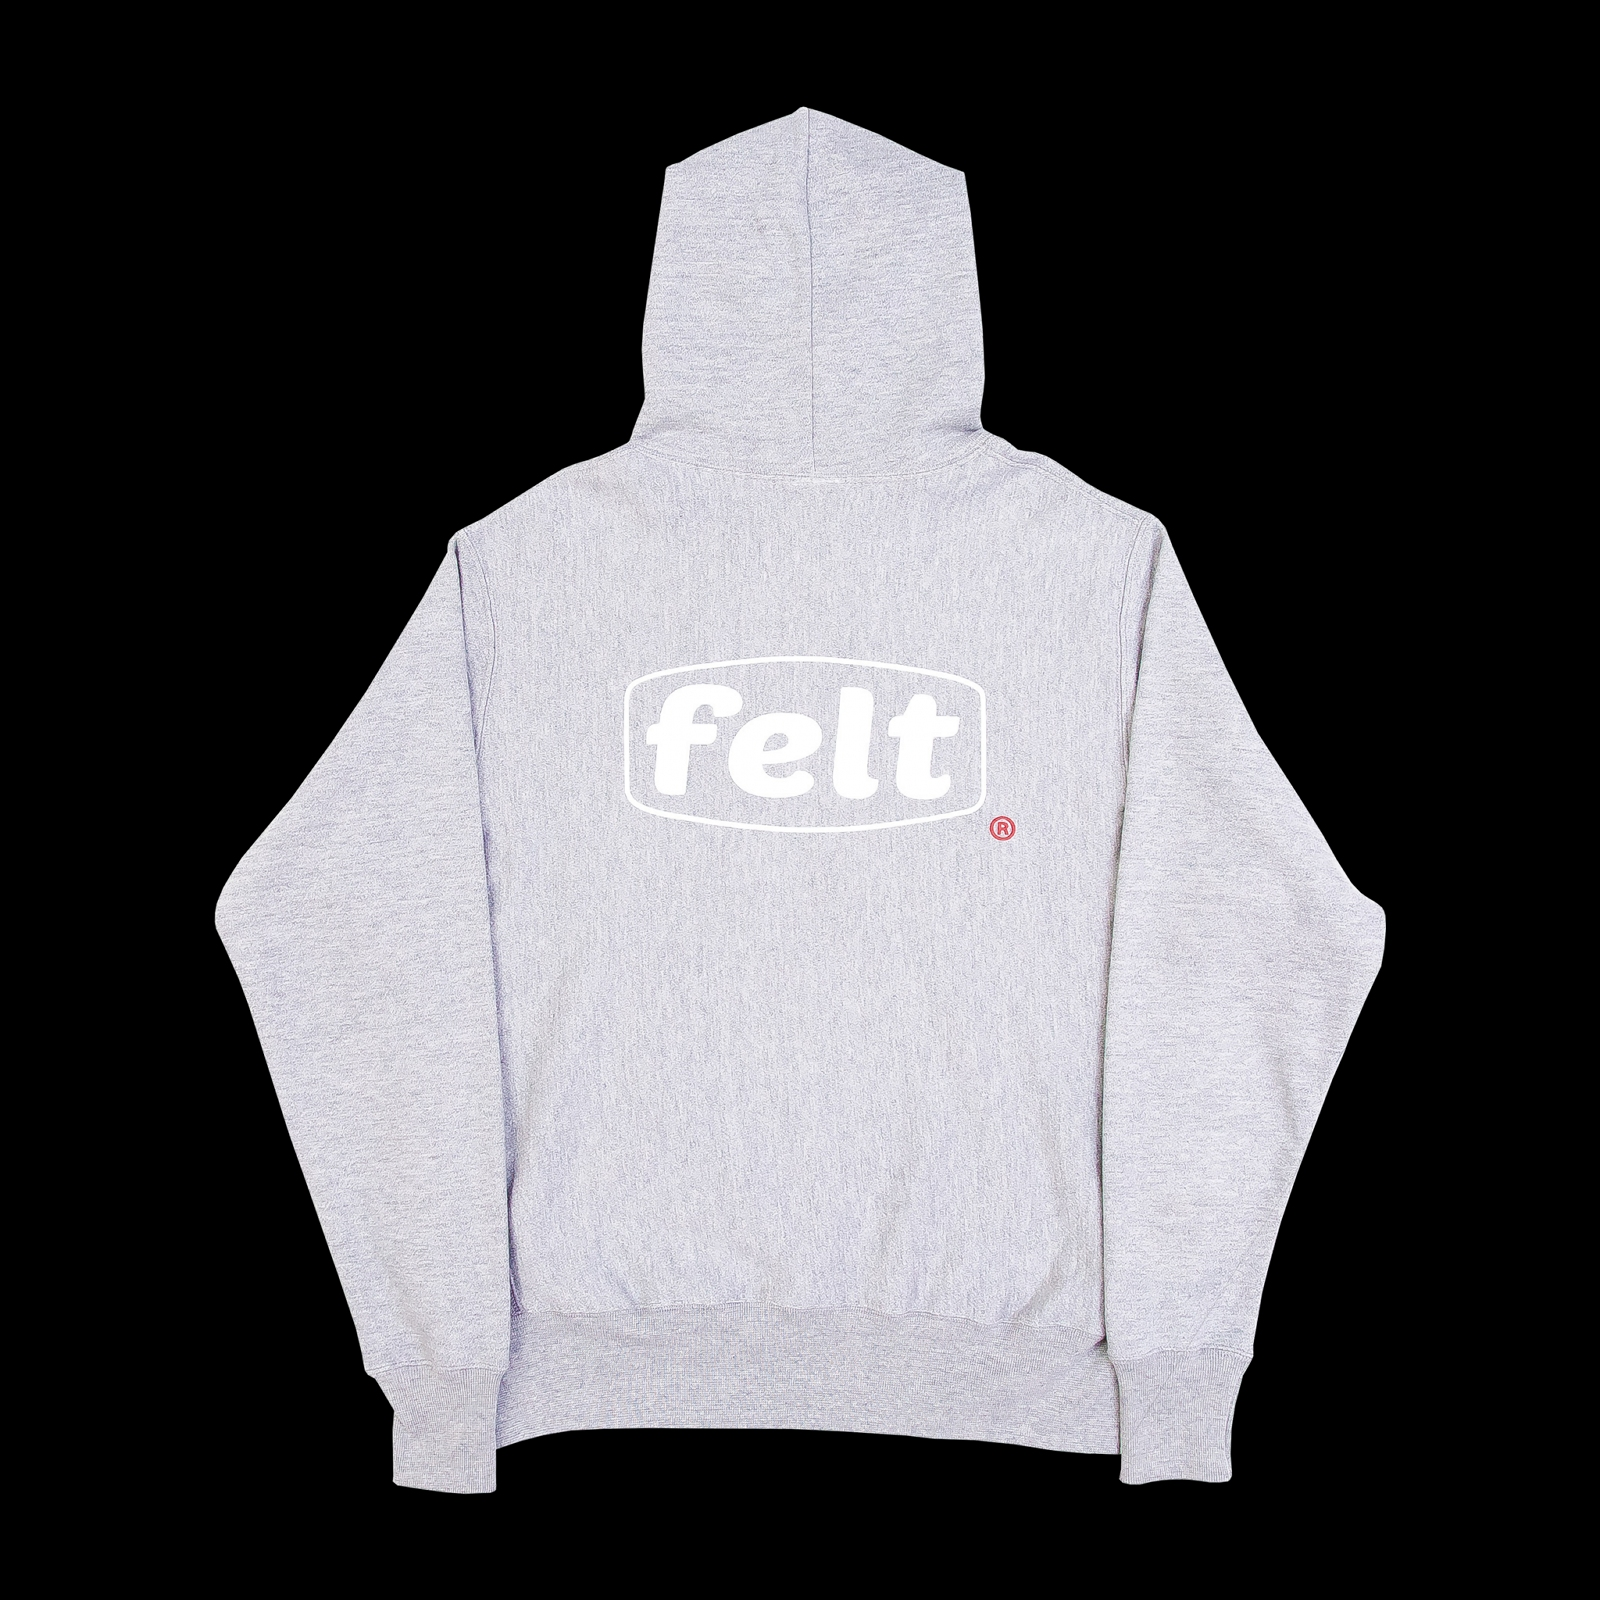 【FELT/フェルト】WORK LOGO SWEATSHIRT パーカー / HEATHER